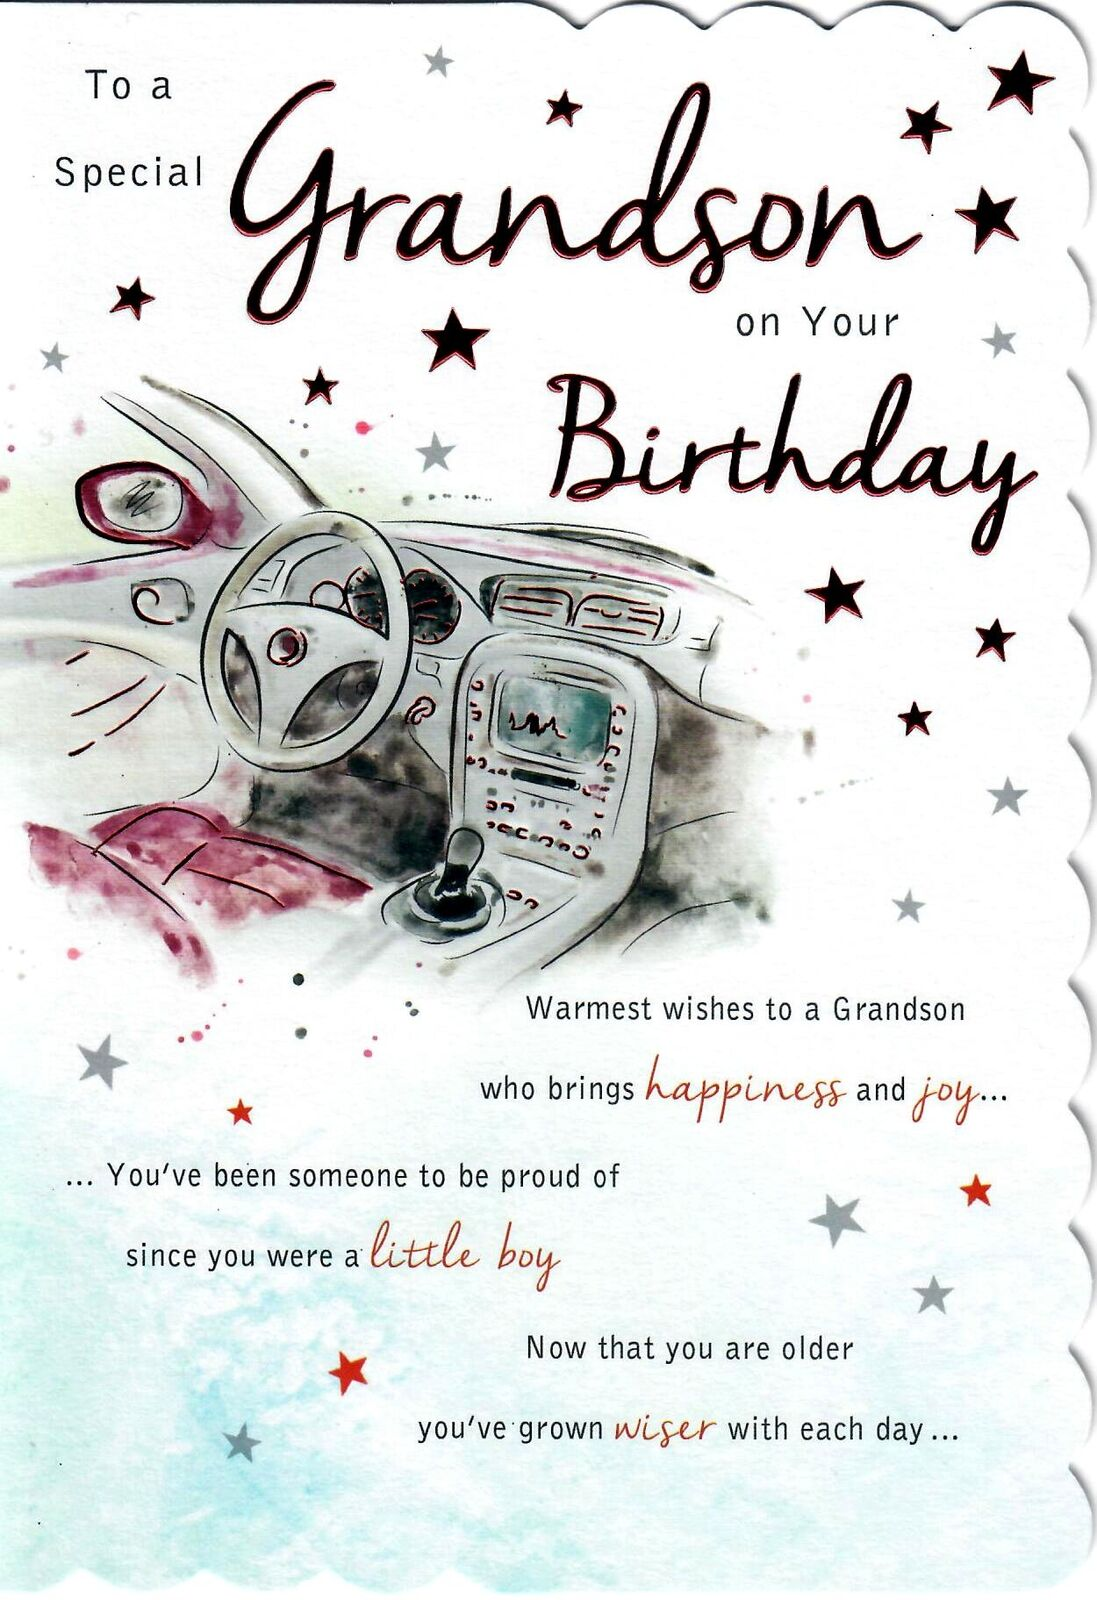 Stunning Modern Design To A Special Grandson On Your Birthday